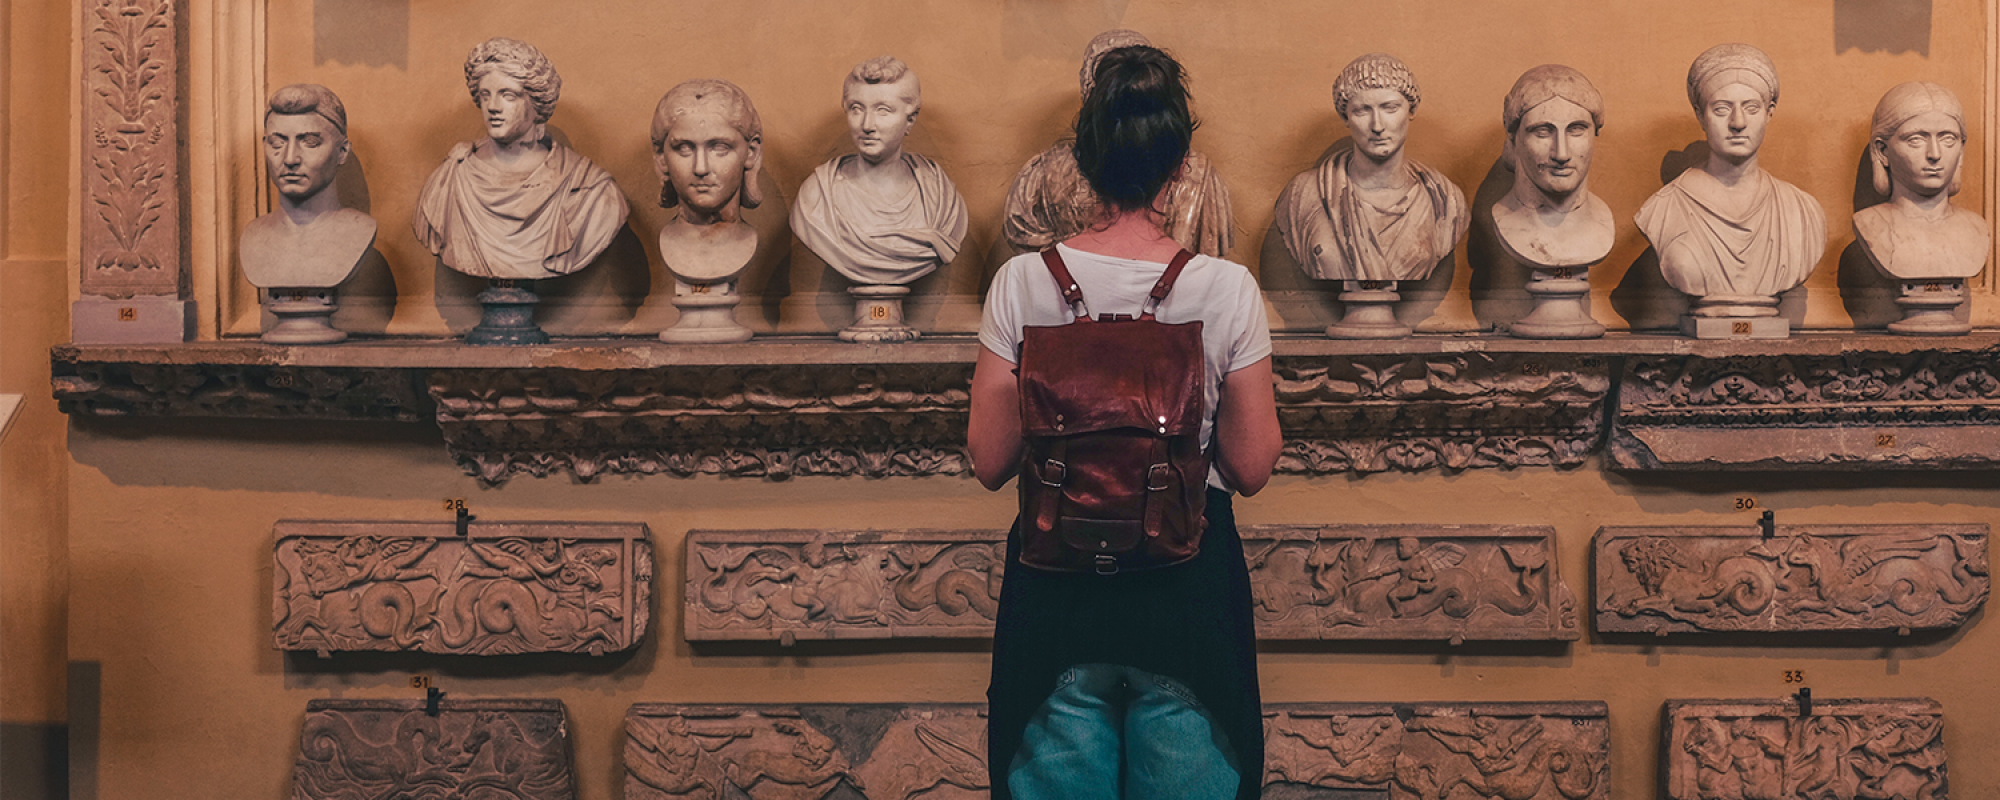 Female student examining stone busts in a museum